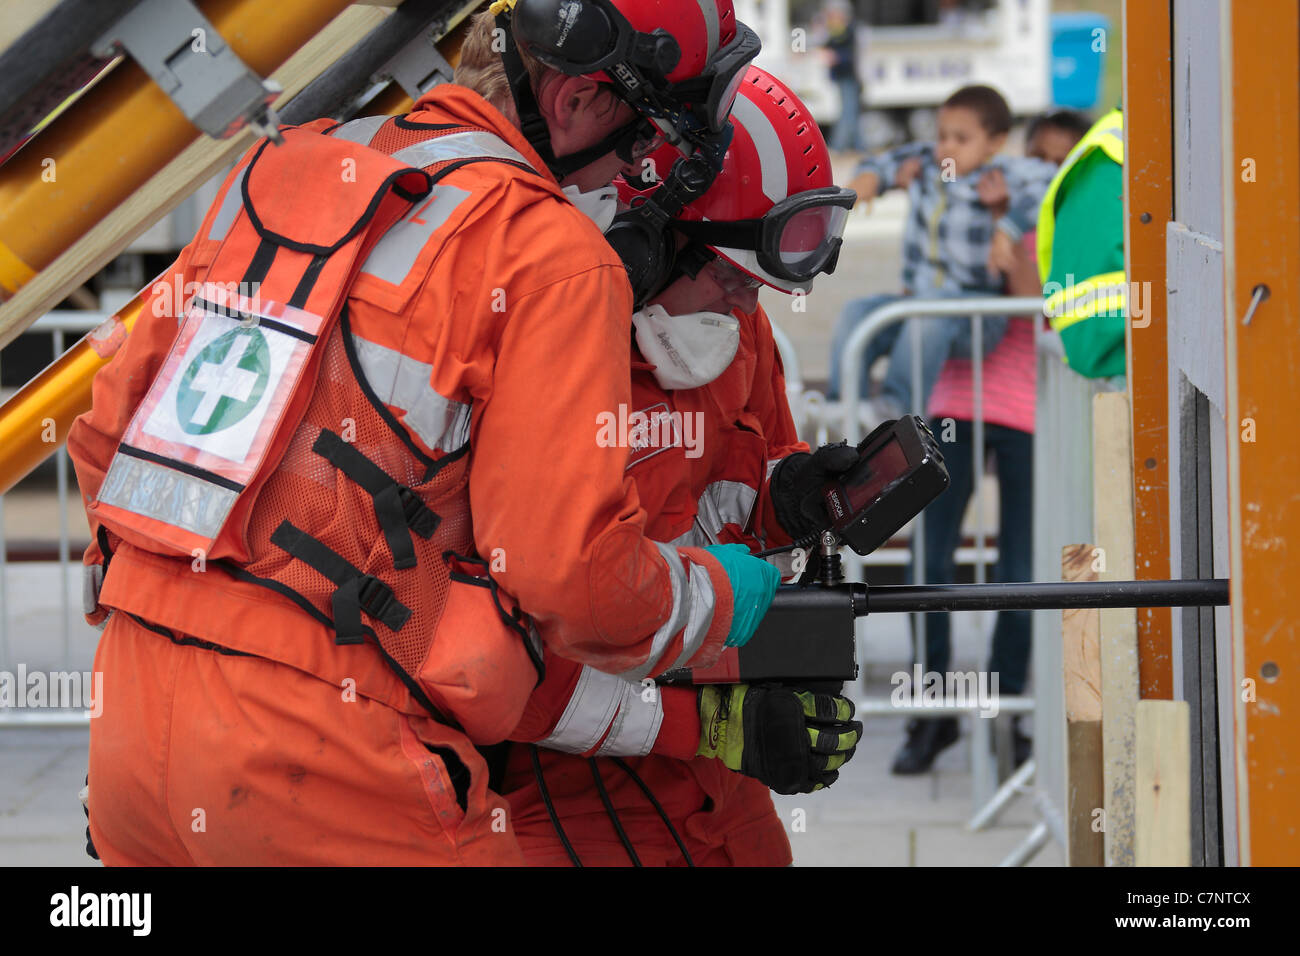 Firefighters using a Search Camera to look inside a confined space. - Stock Image